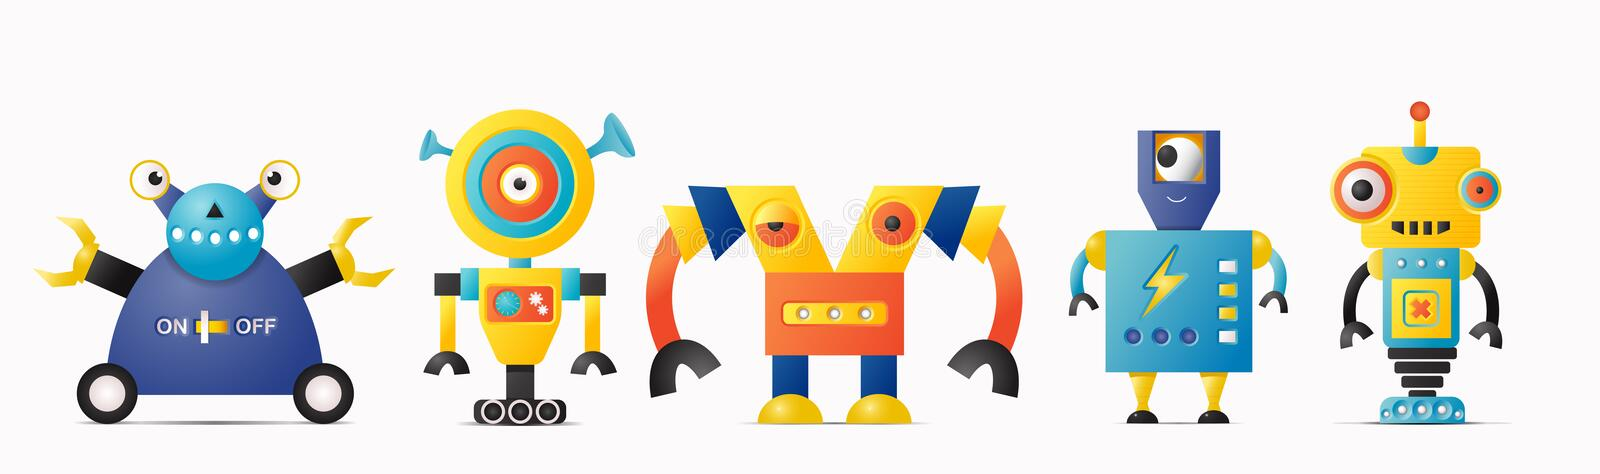 Set of cute vector robot or monster characters for kids. Vintage futuristic cyborgs vector illustration